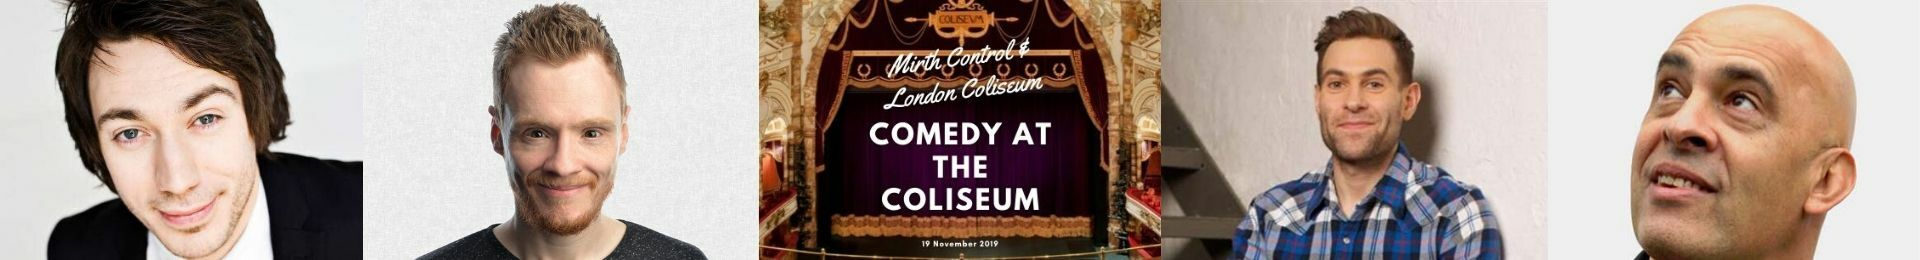 Comedy at the Coliseum banner image